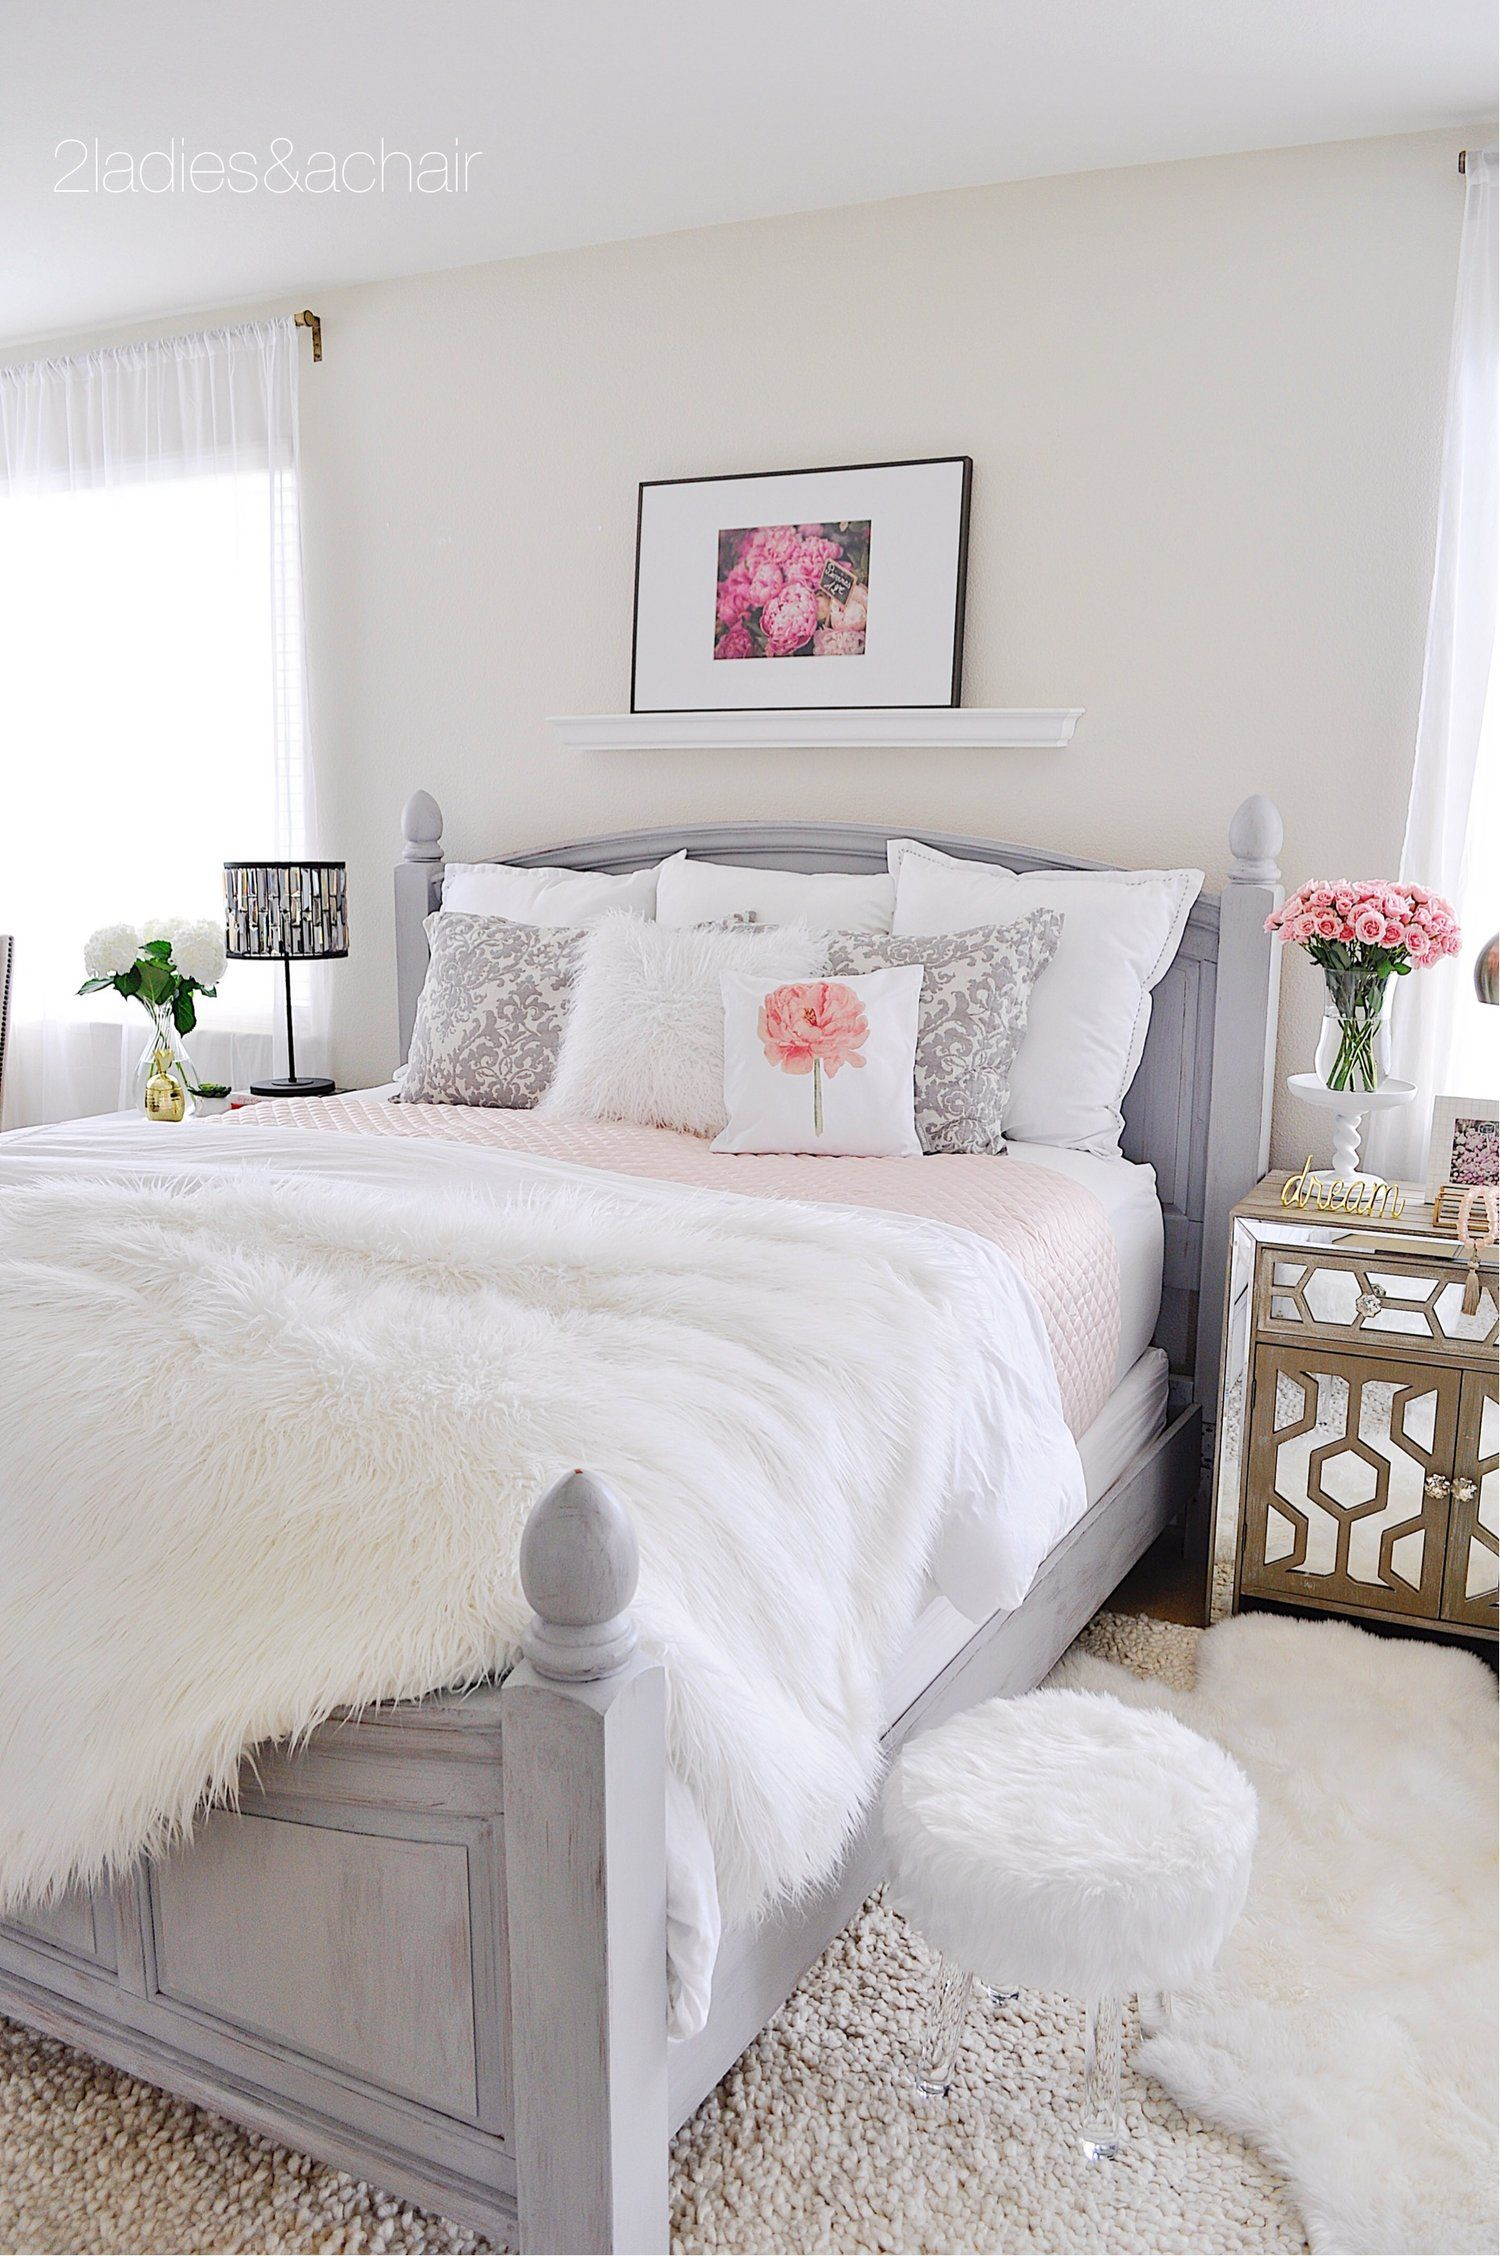 Before amp after tween boy bedroom makeover reveal - Jul 14 Bedroom Decorating Ideas Before And After